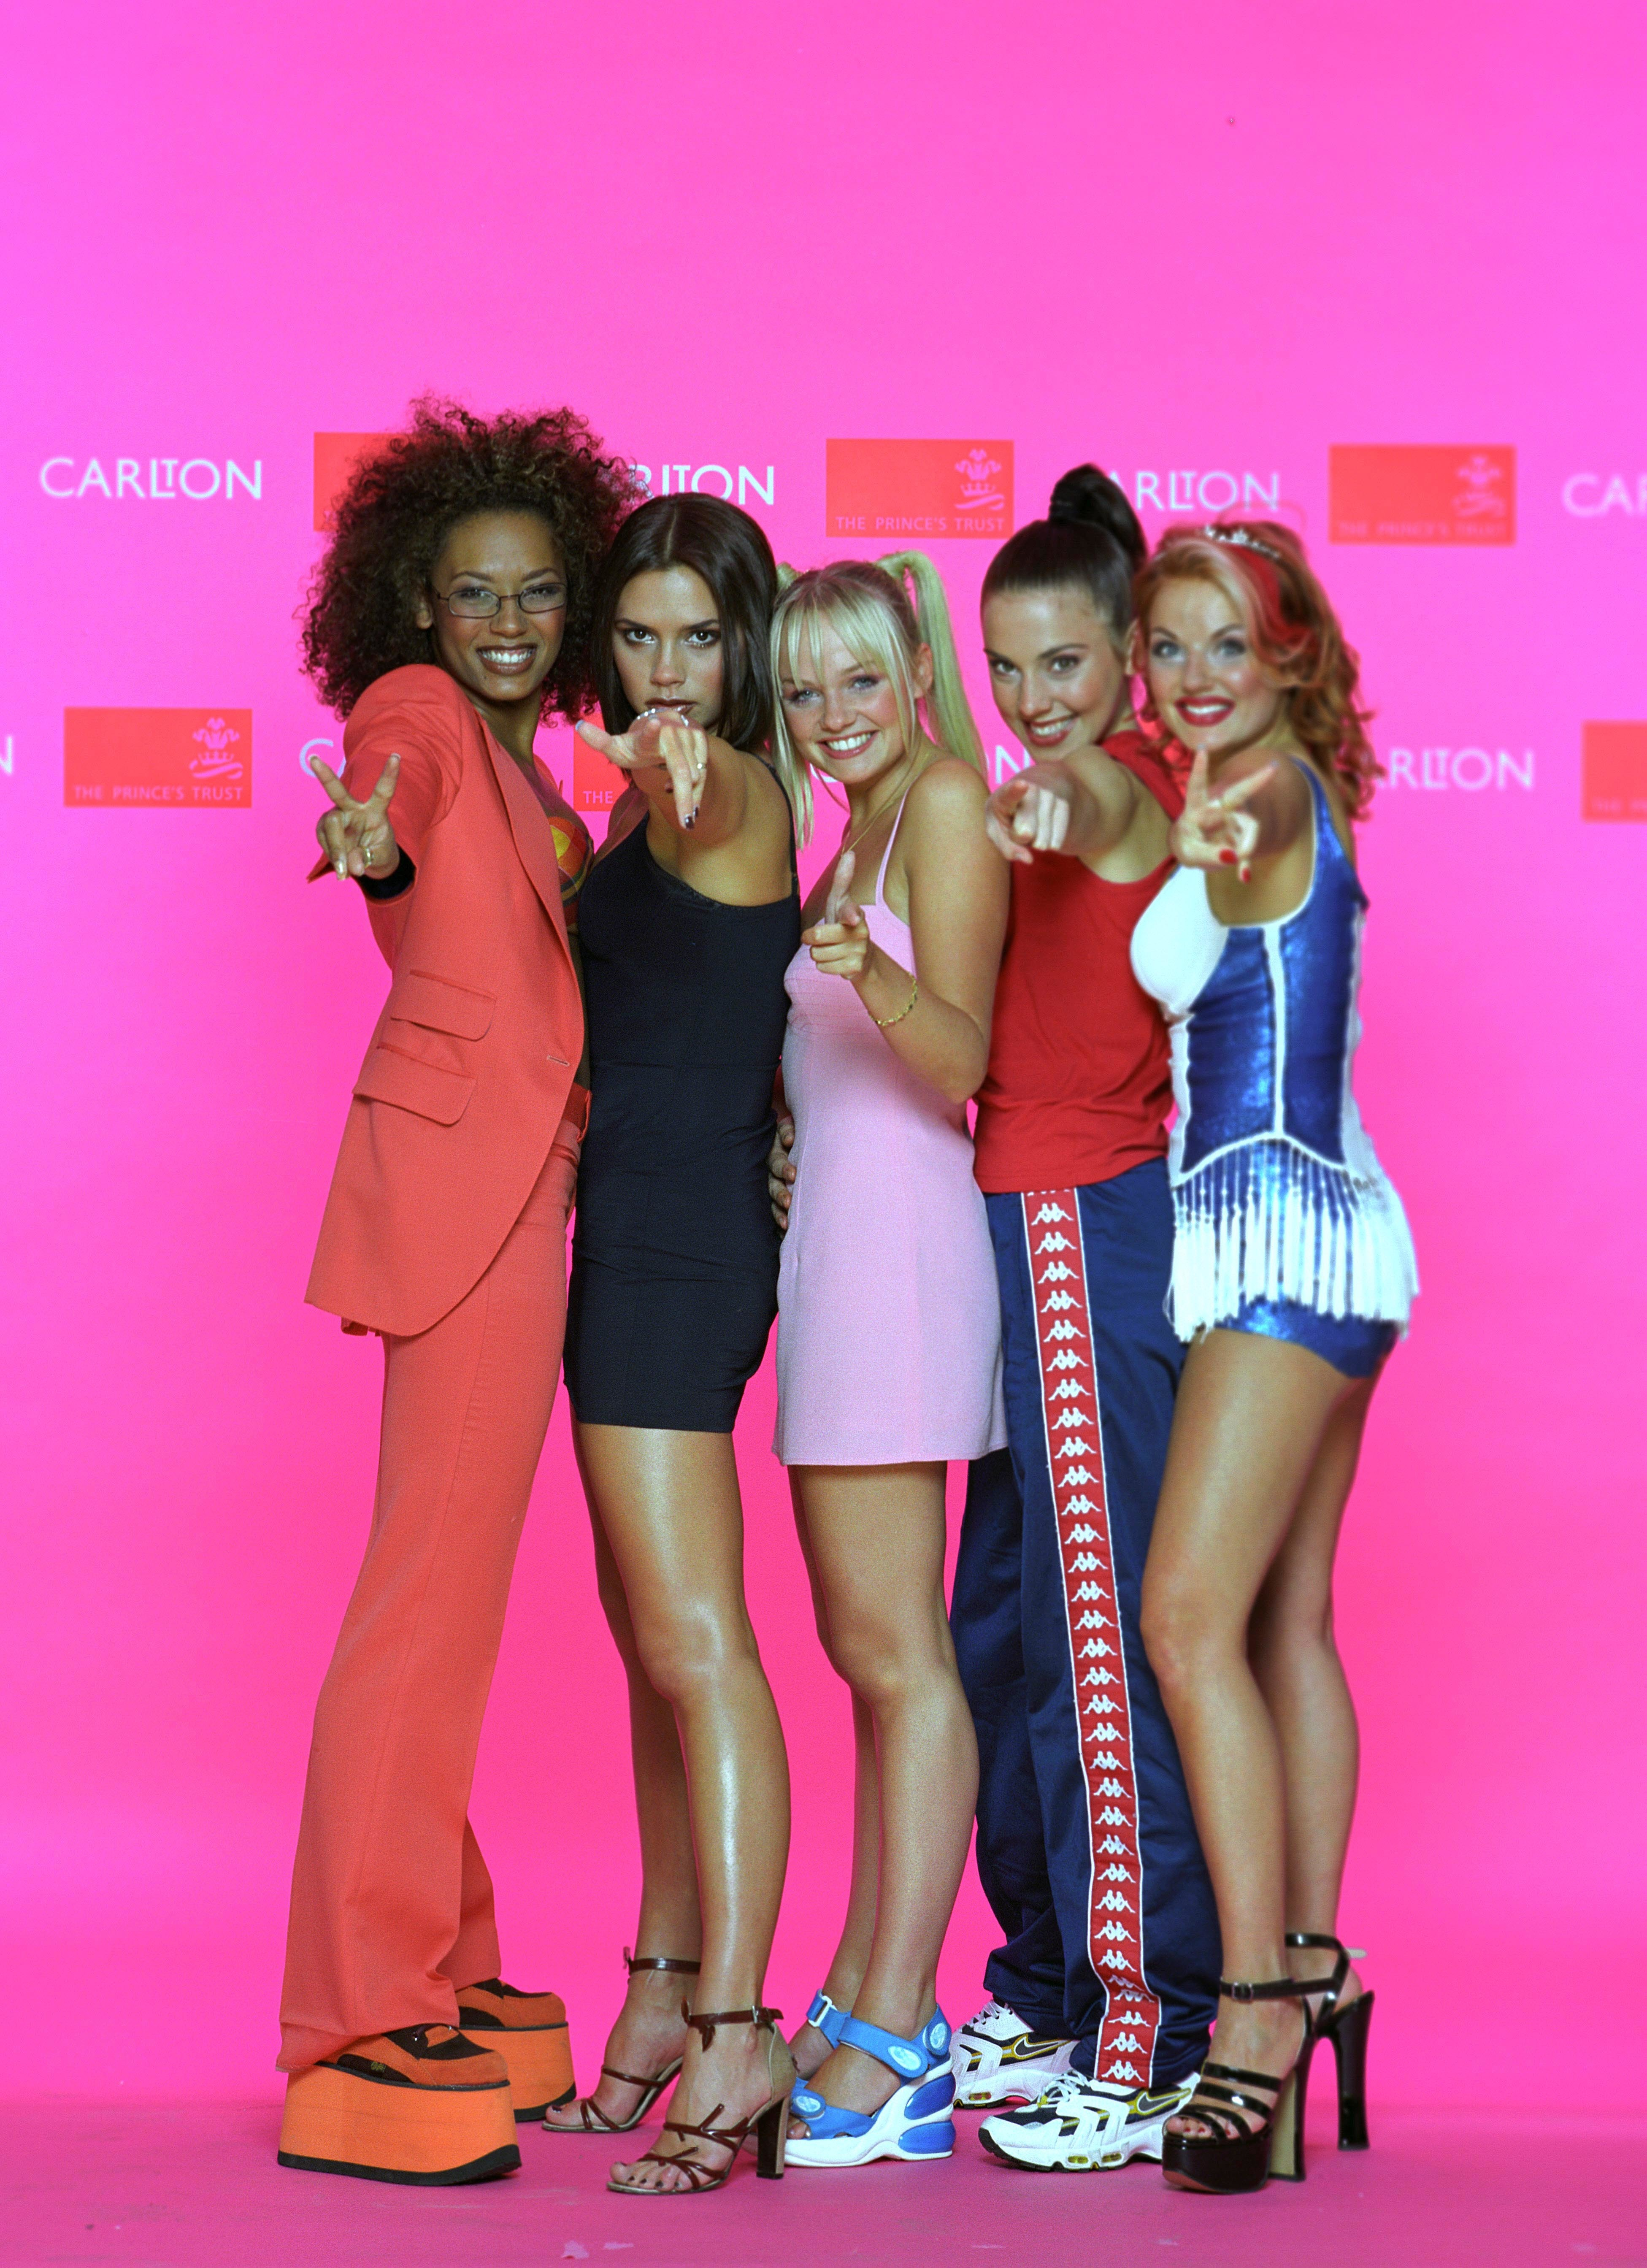 Spice Girls fashion , a look back at their retro style